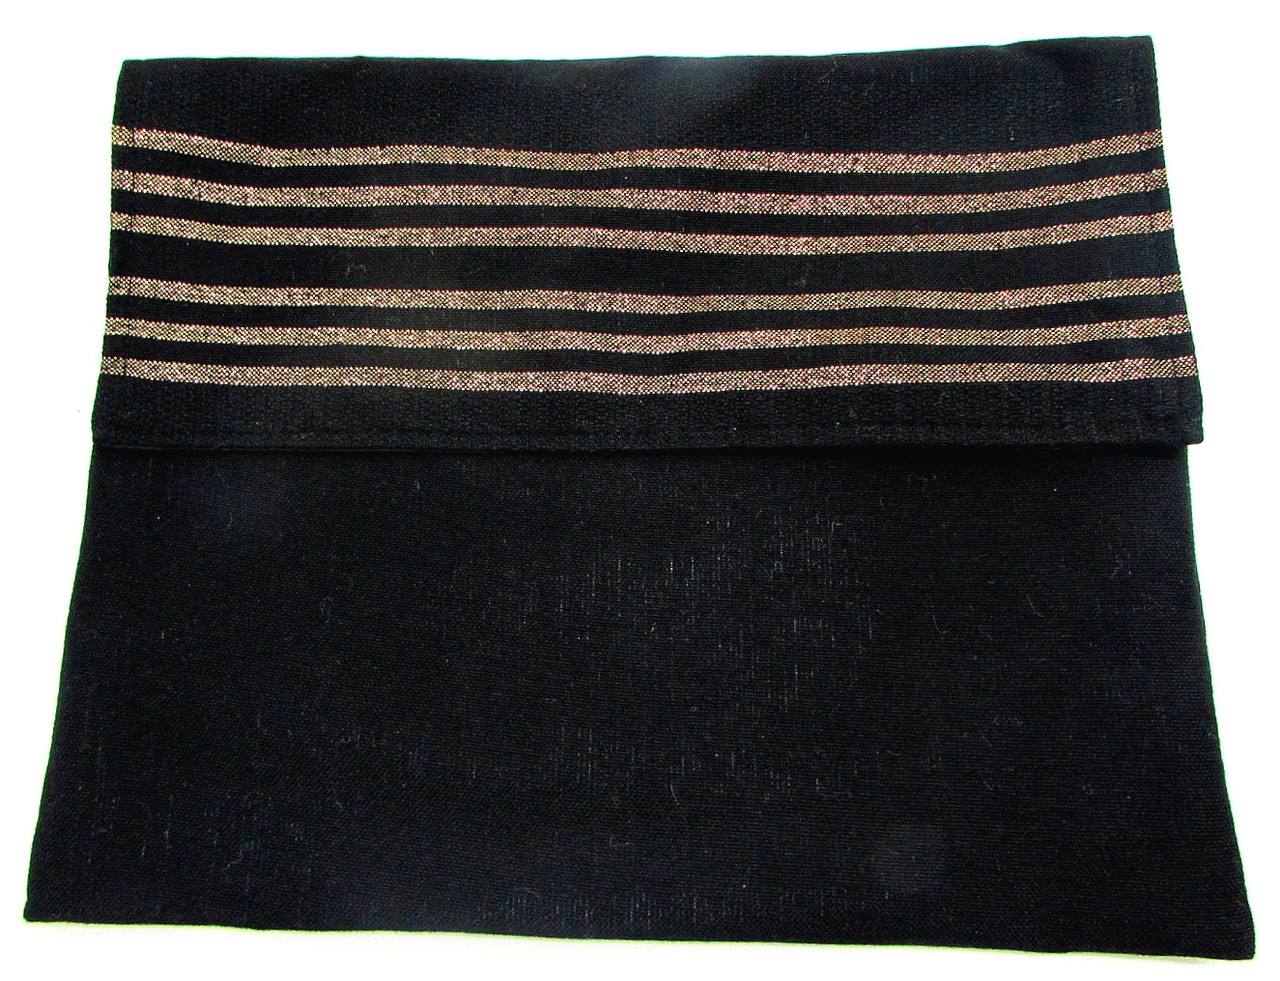 Handwoven Black Wool Tallit Bag with Gold stripes